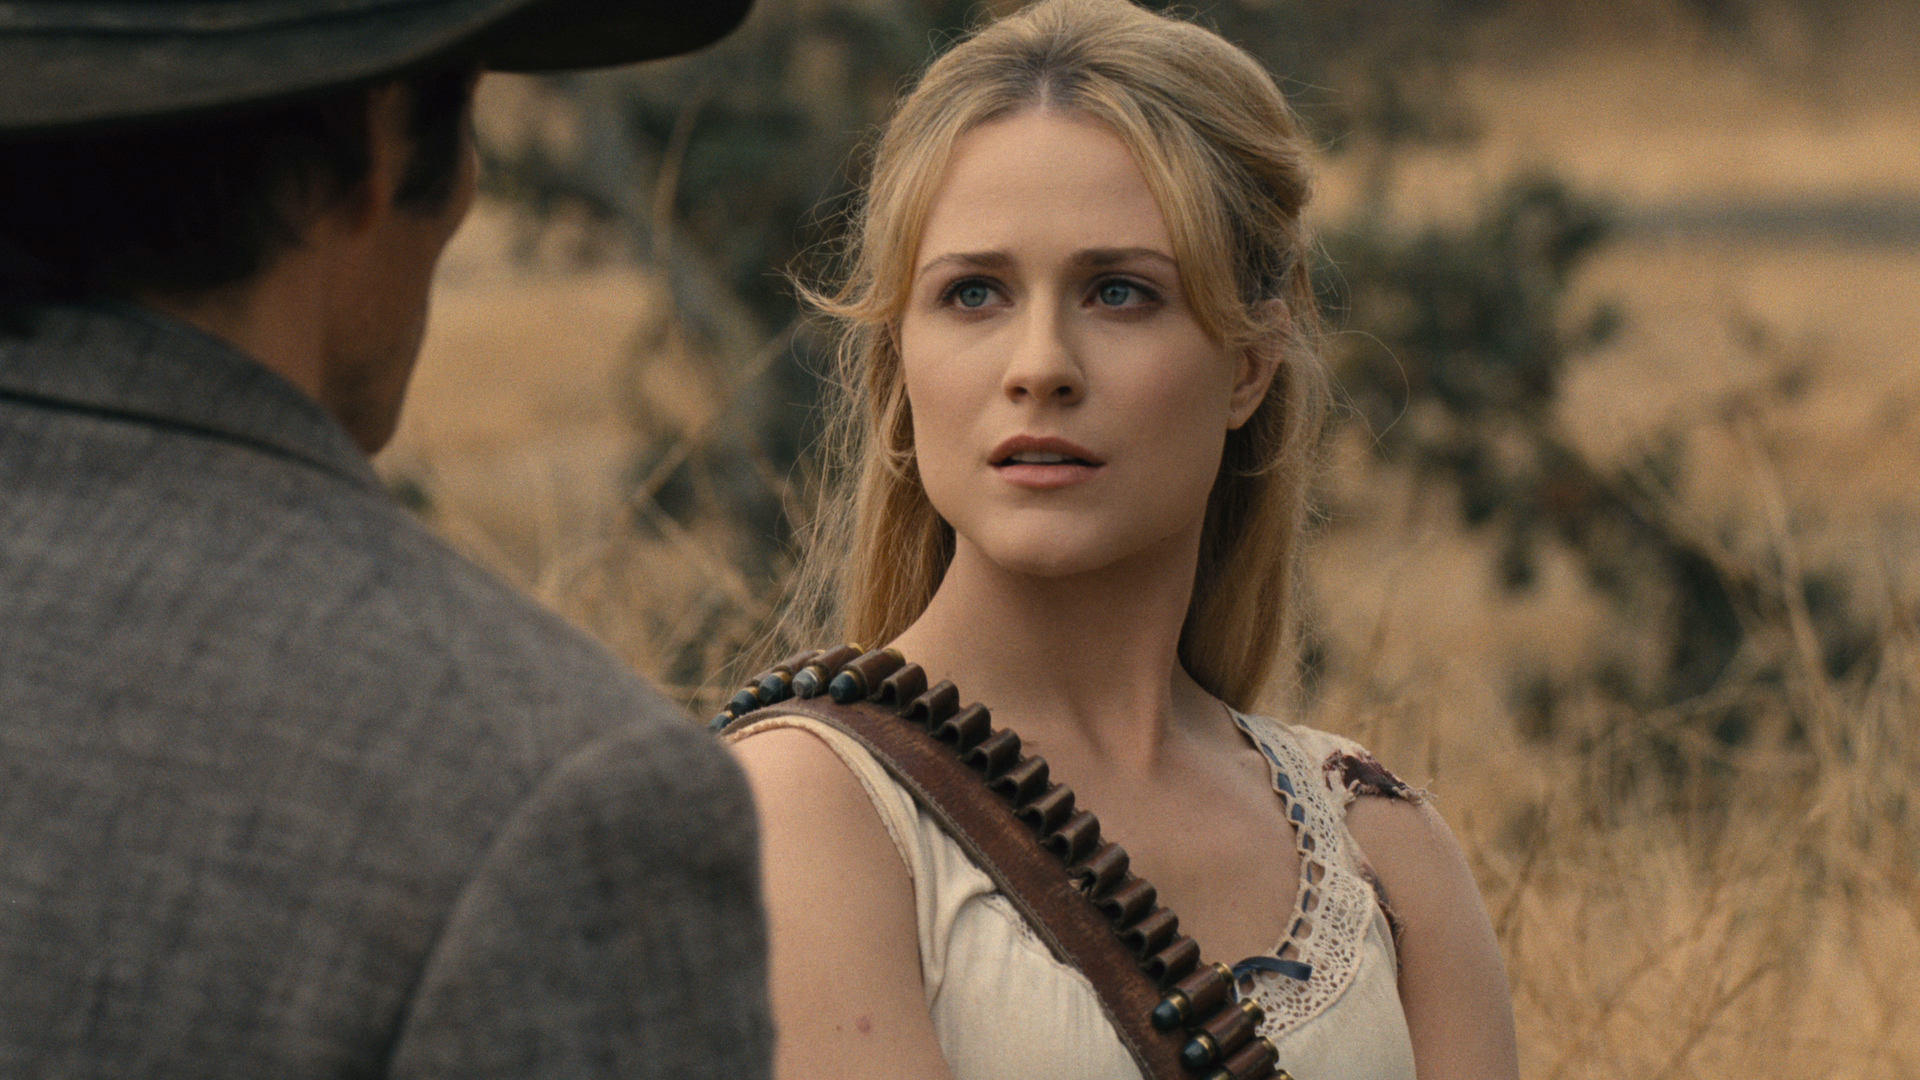 'Westworld' Season 3 to Pull Back on Too Many Mysteries: 'It's Less of a Guessing Game'